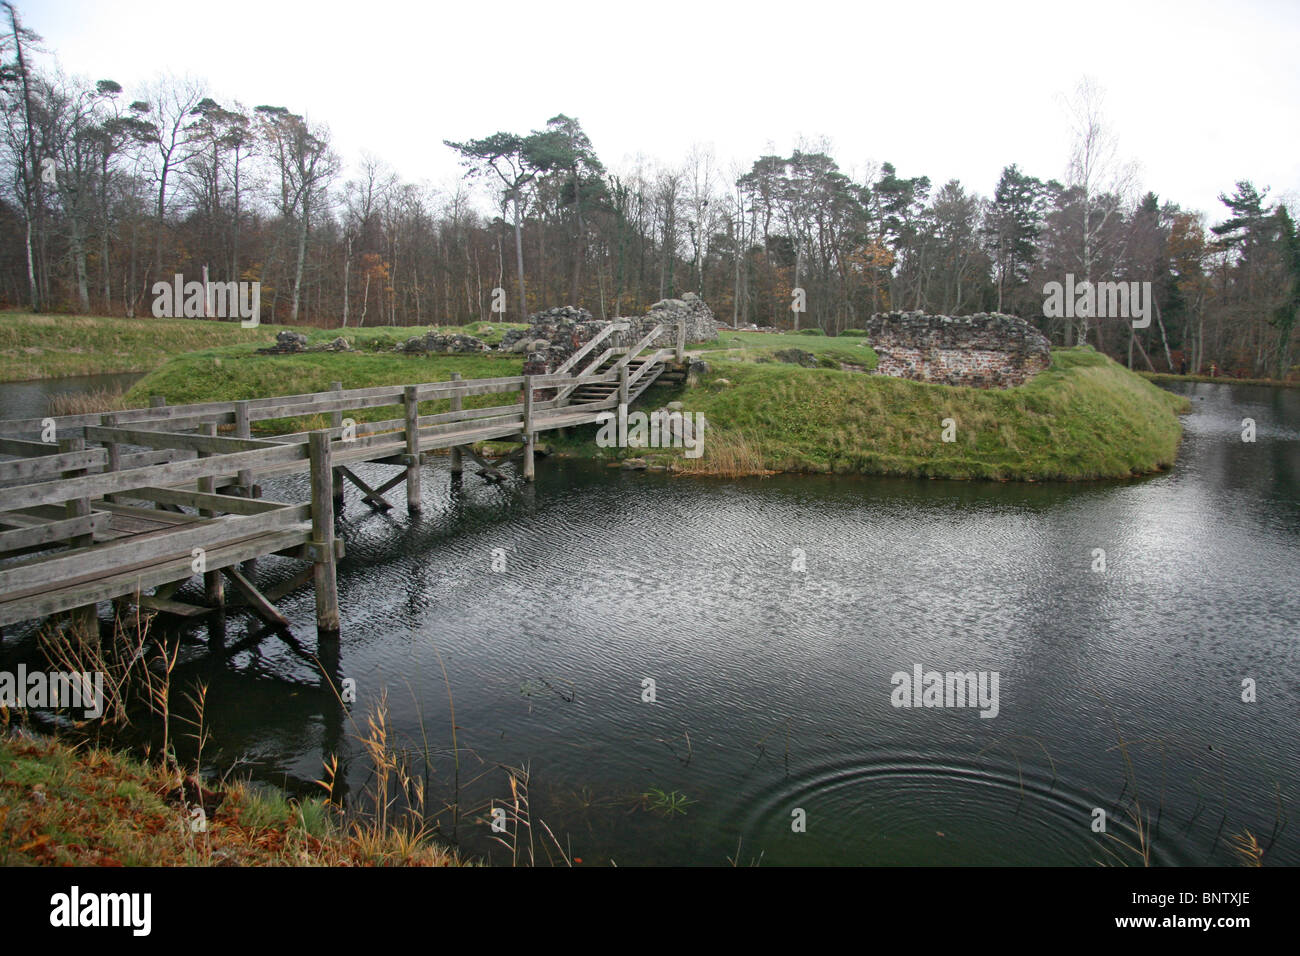 The ruins of Asserbo Monastery as seen from outside the moat, near Asserbo, Denmark. - Stock Image